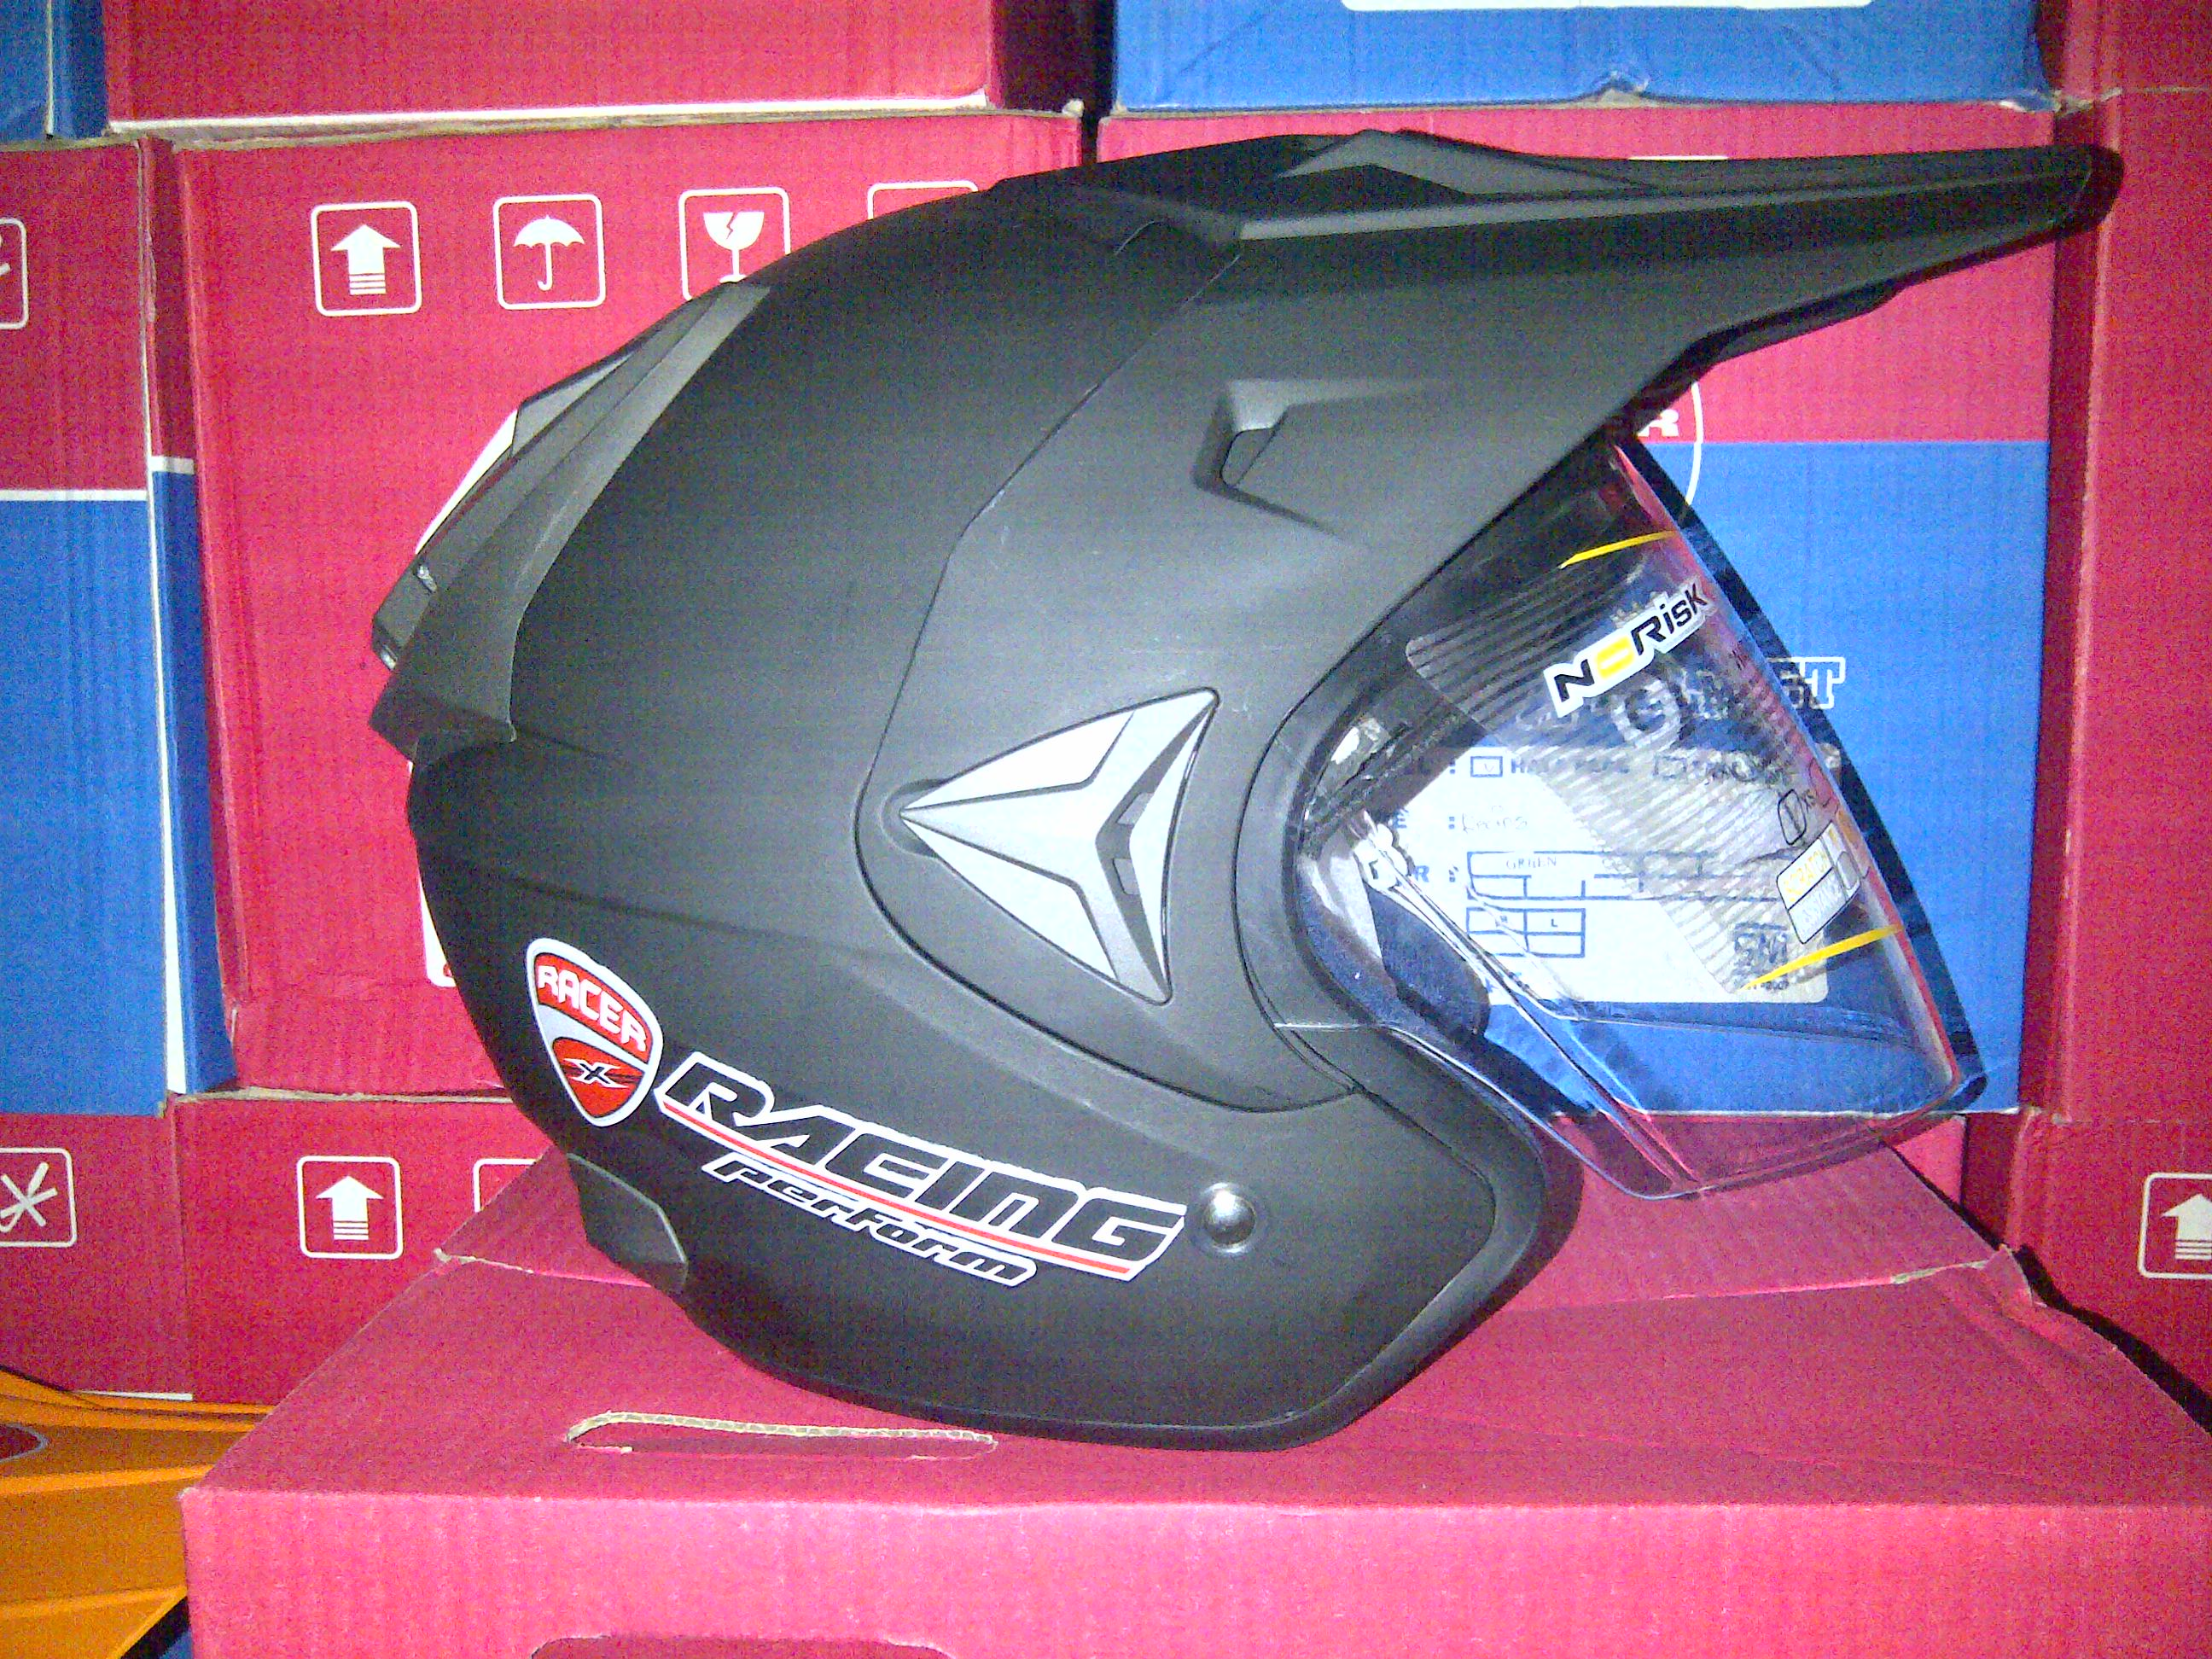 IMG 20141016 00328 helm TRIAL ADVENTURE uk all size wrna htm DOB hrg 275 rb